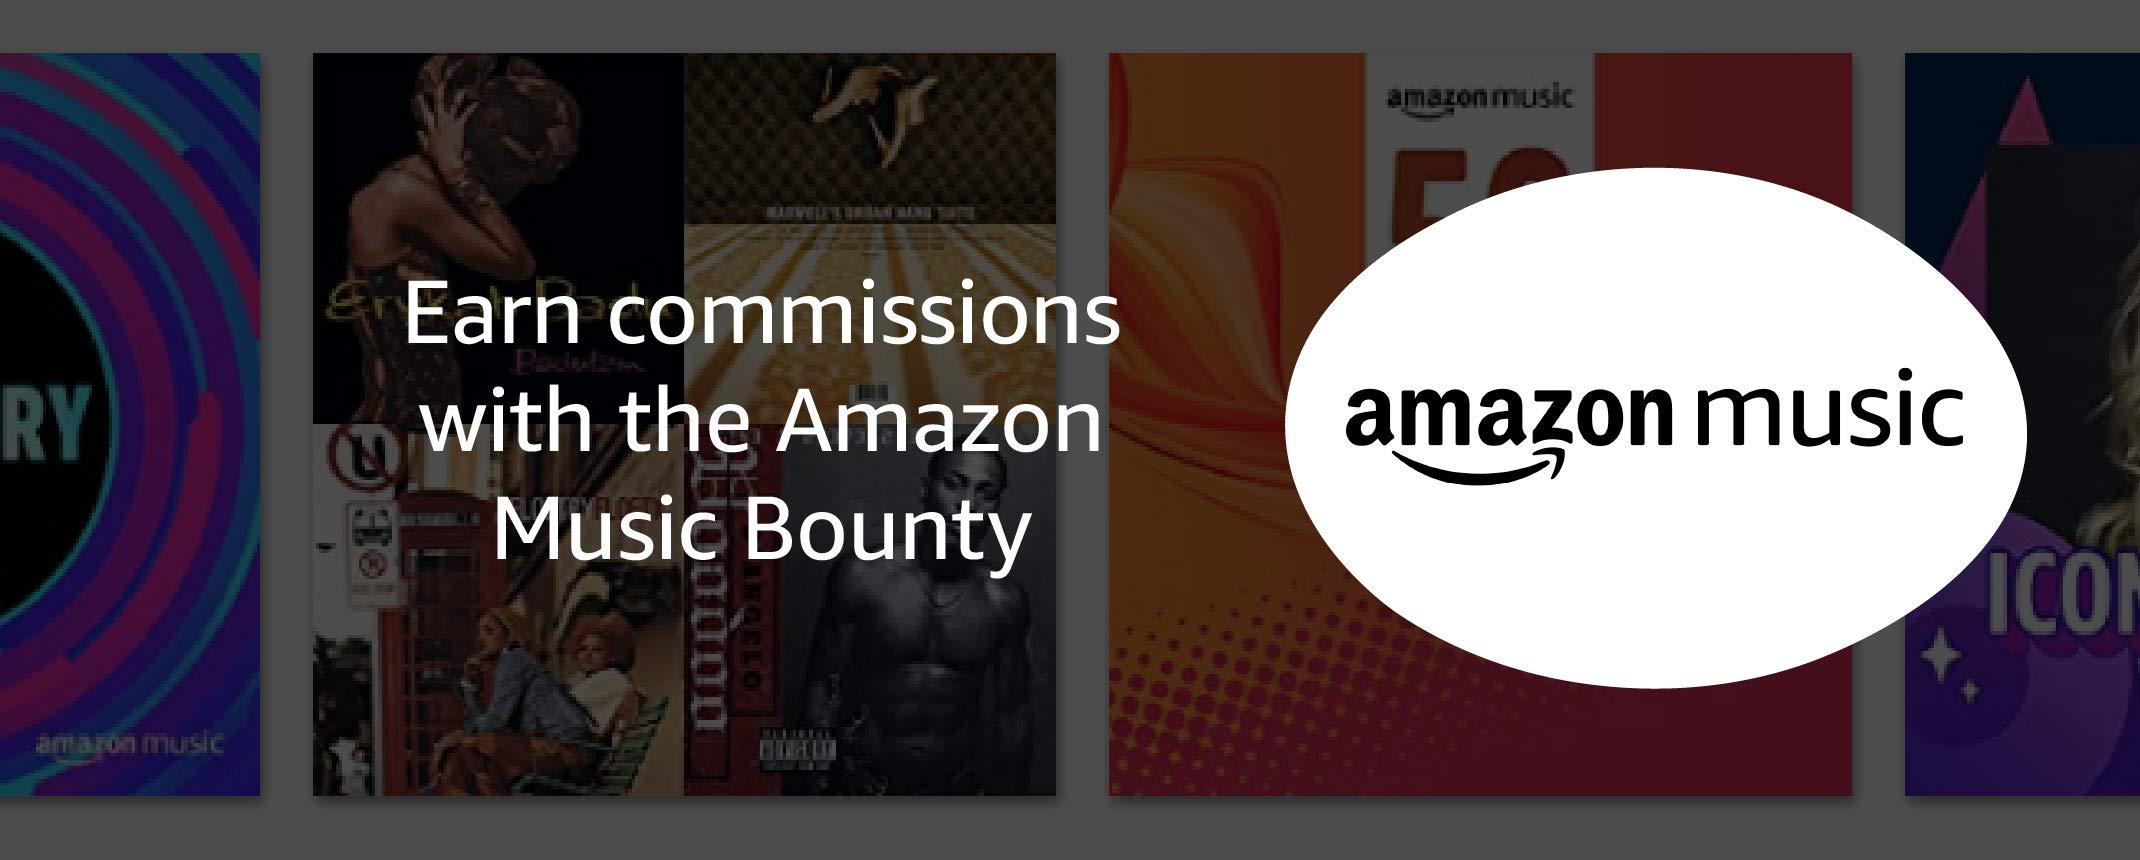 Earn commissions with the Amazon Music Bounty